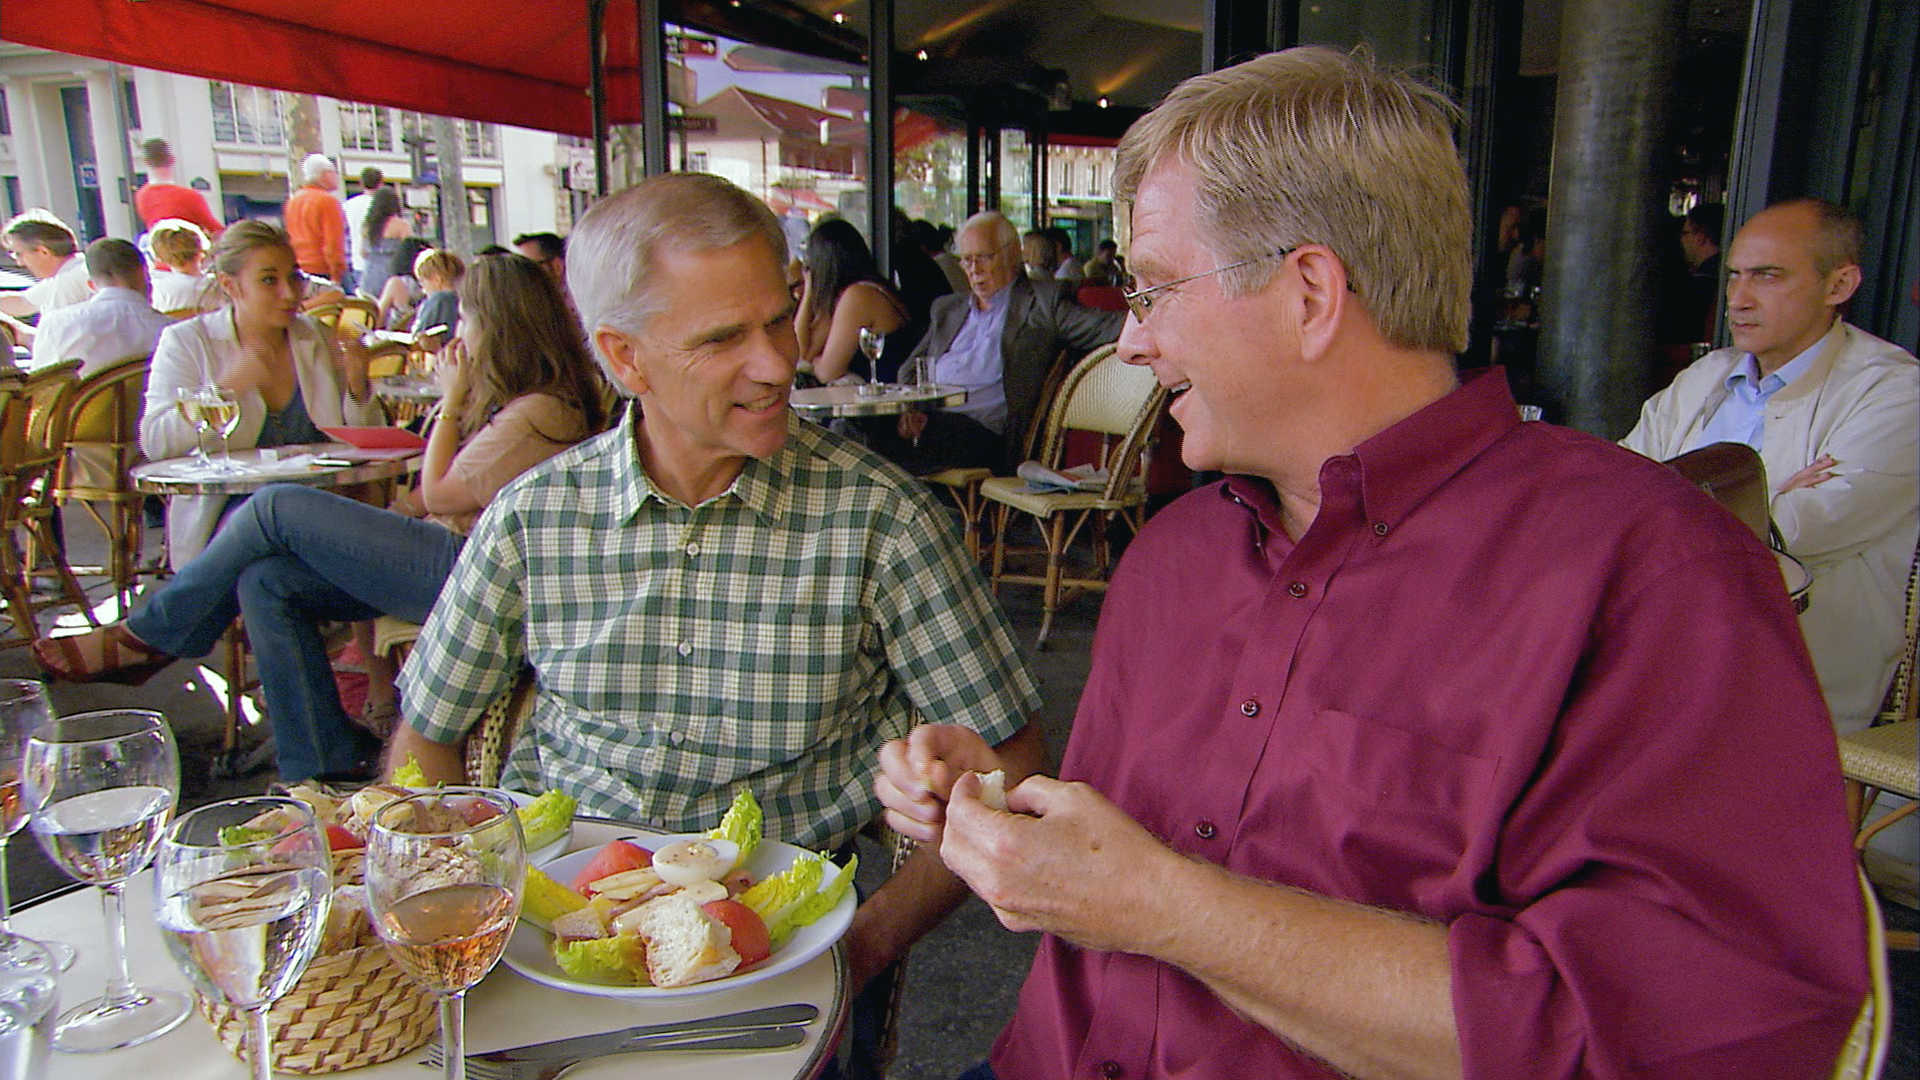 Steve Smith dines with Rick Steves